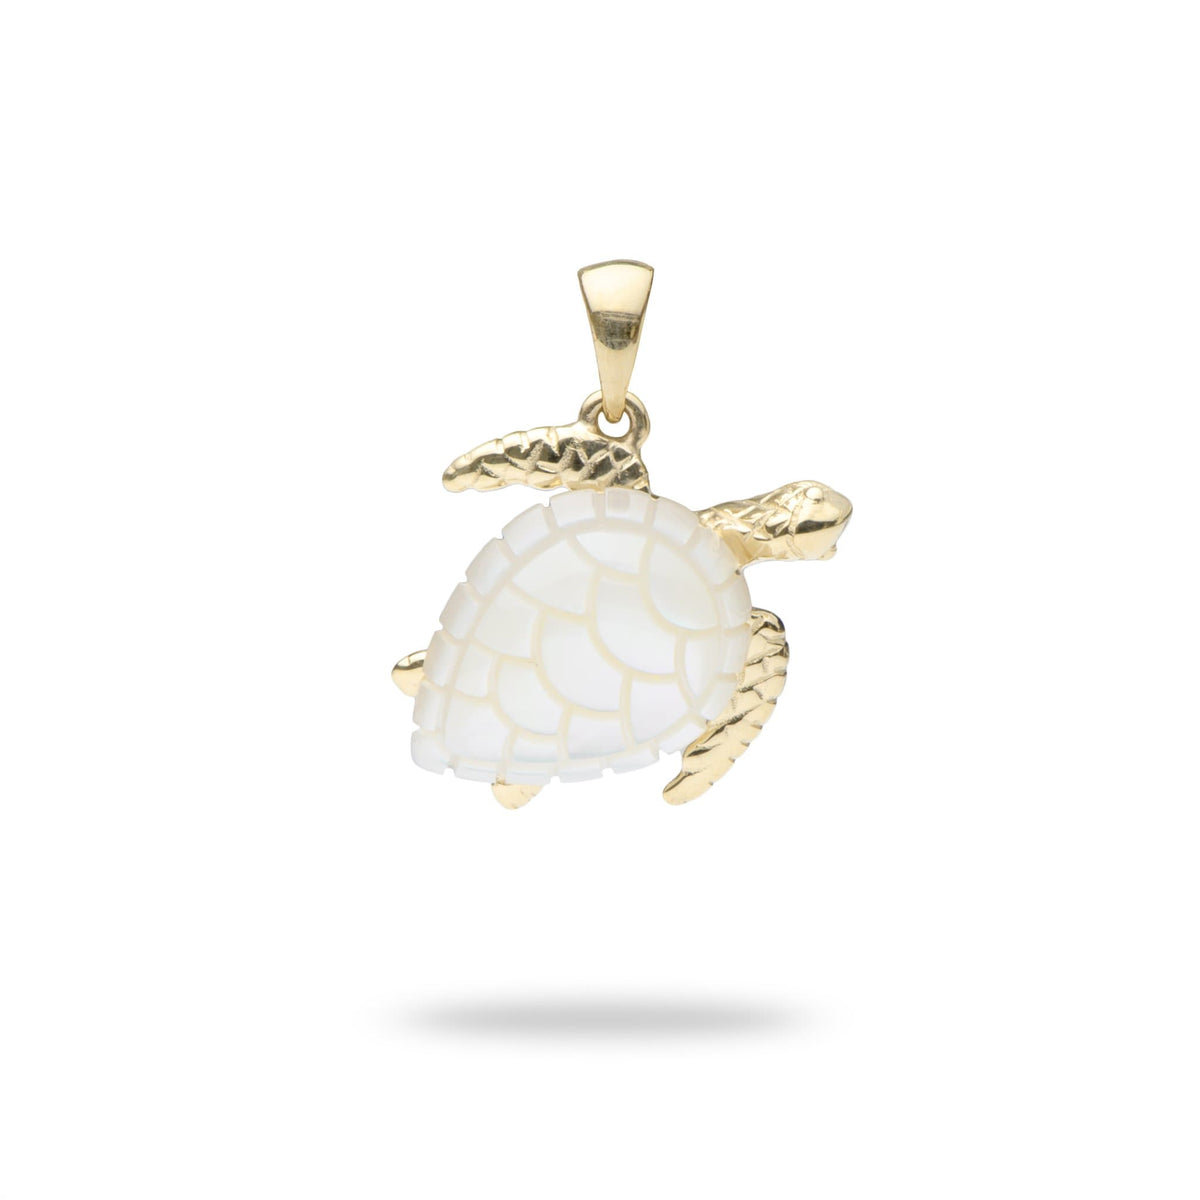 Honu (Turtle) Mother Of Pearl Pendant in 14K Yellow Gold